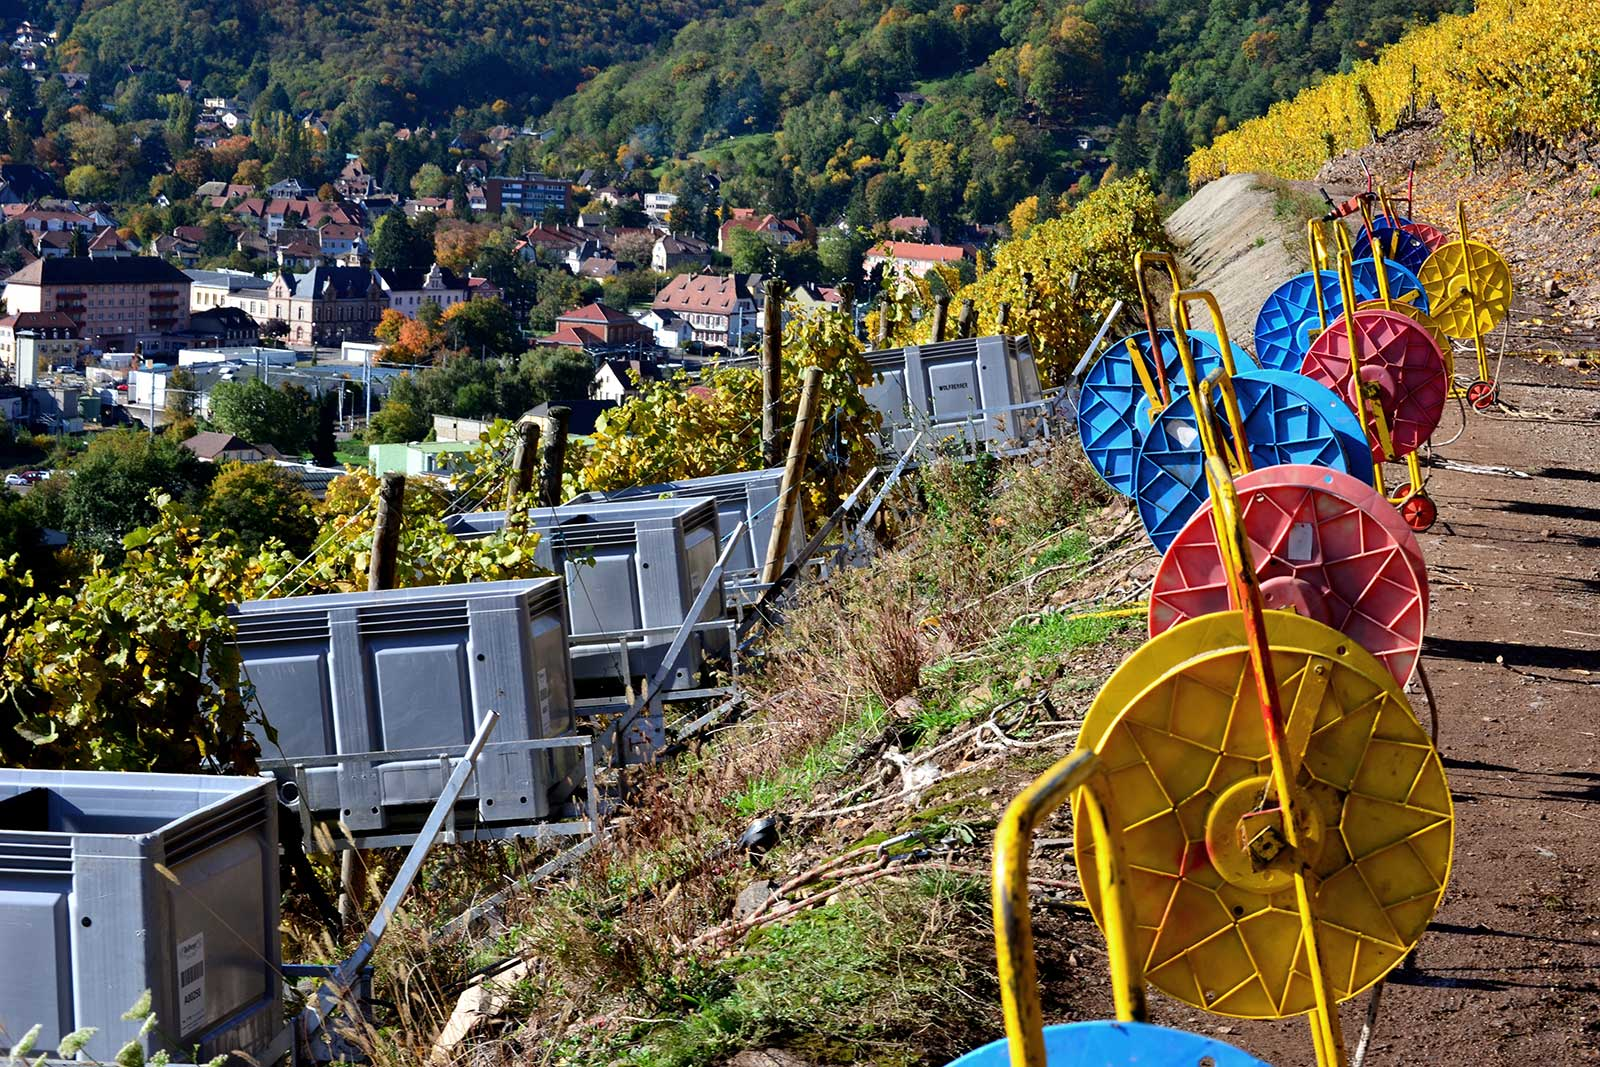 Winches are used for a variety of tasks in the Rangen de Thann, such as plowing and collecting harvest. ©Patricia Didierjean/Conseil Vins Alsace